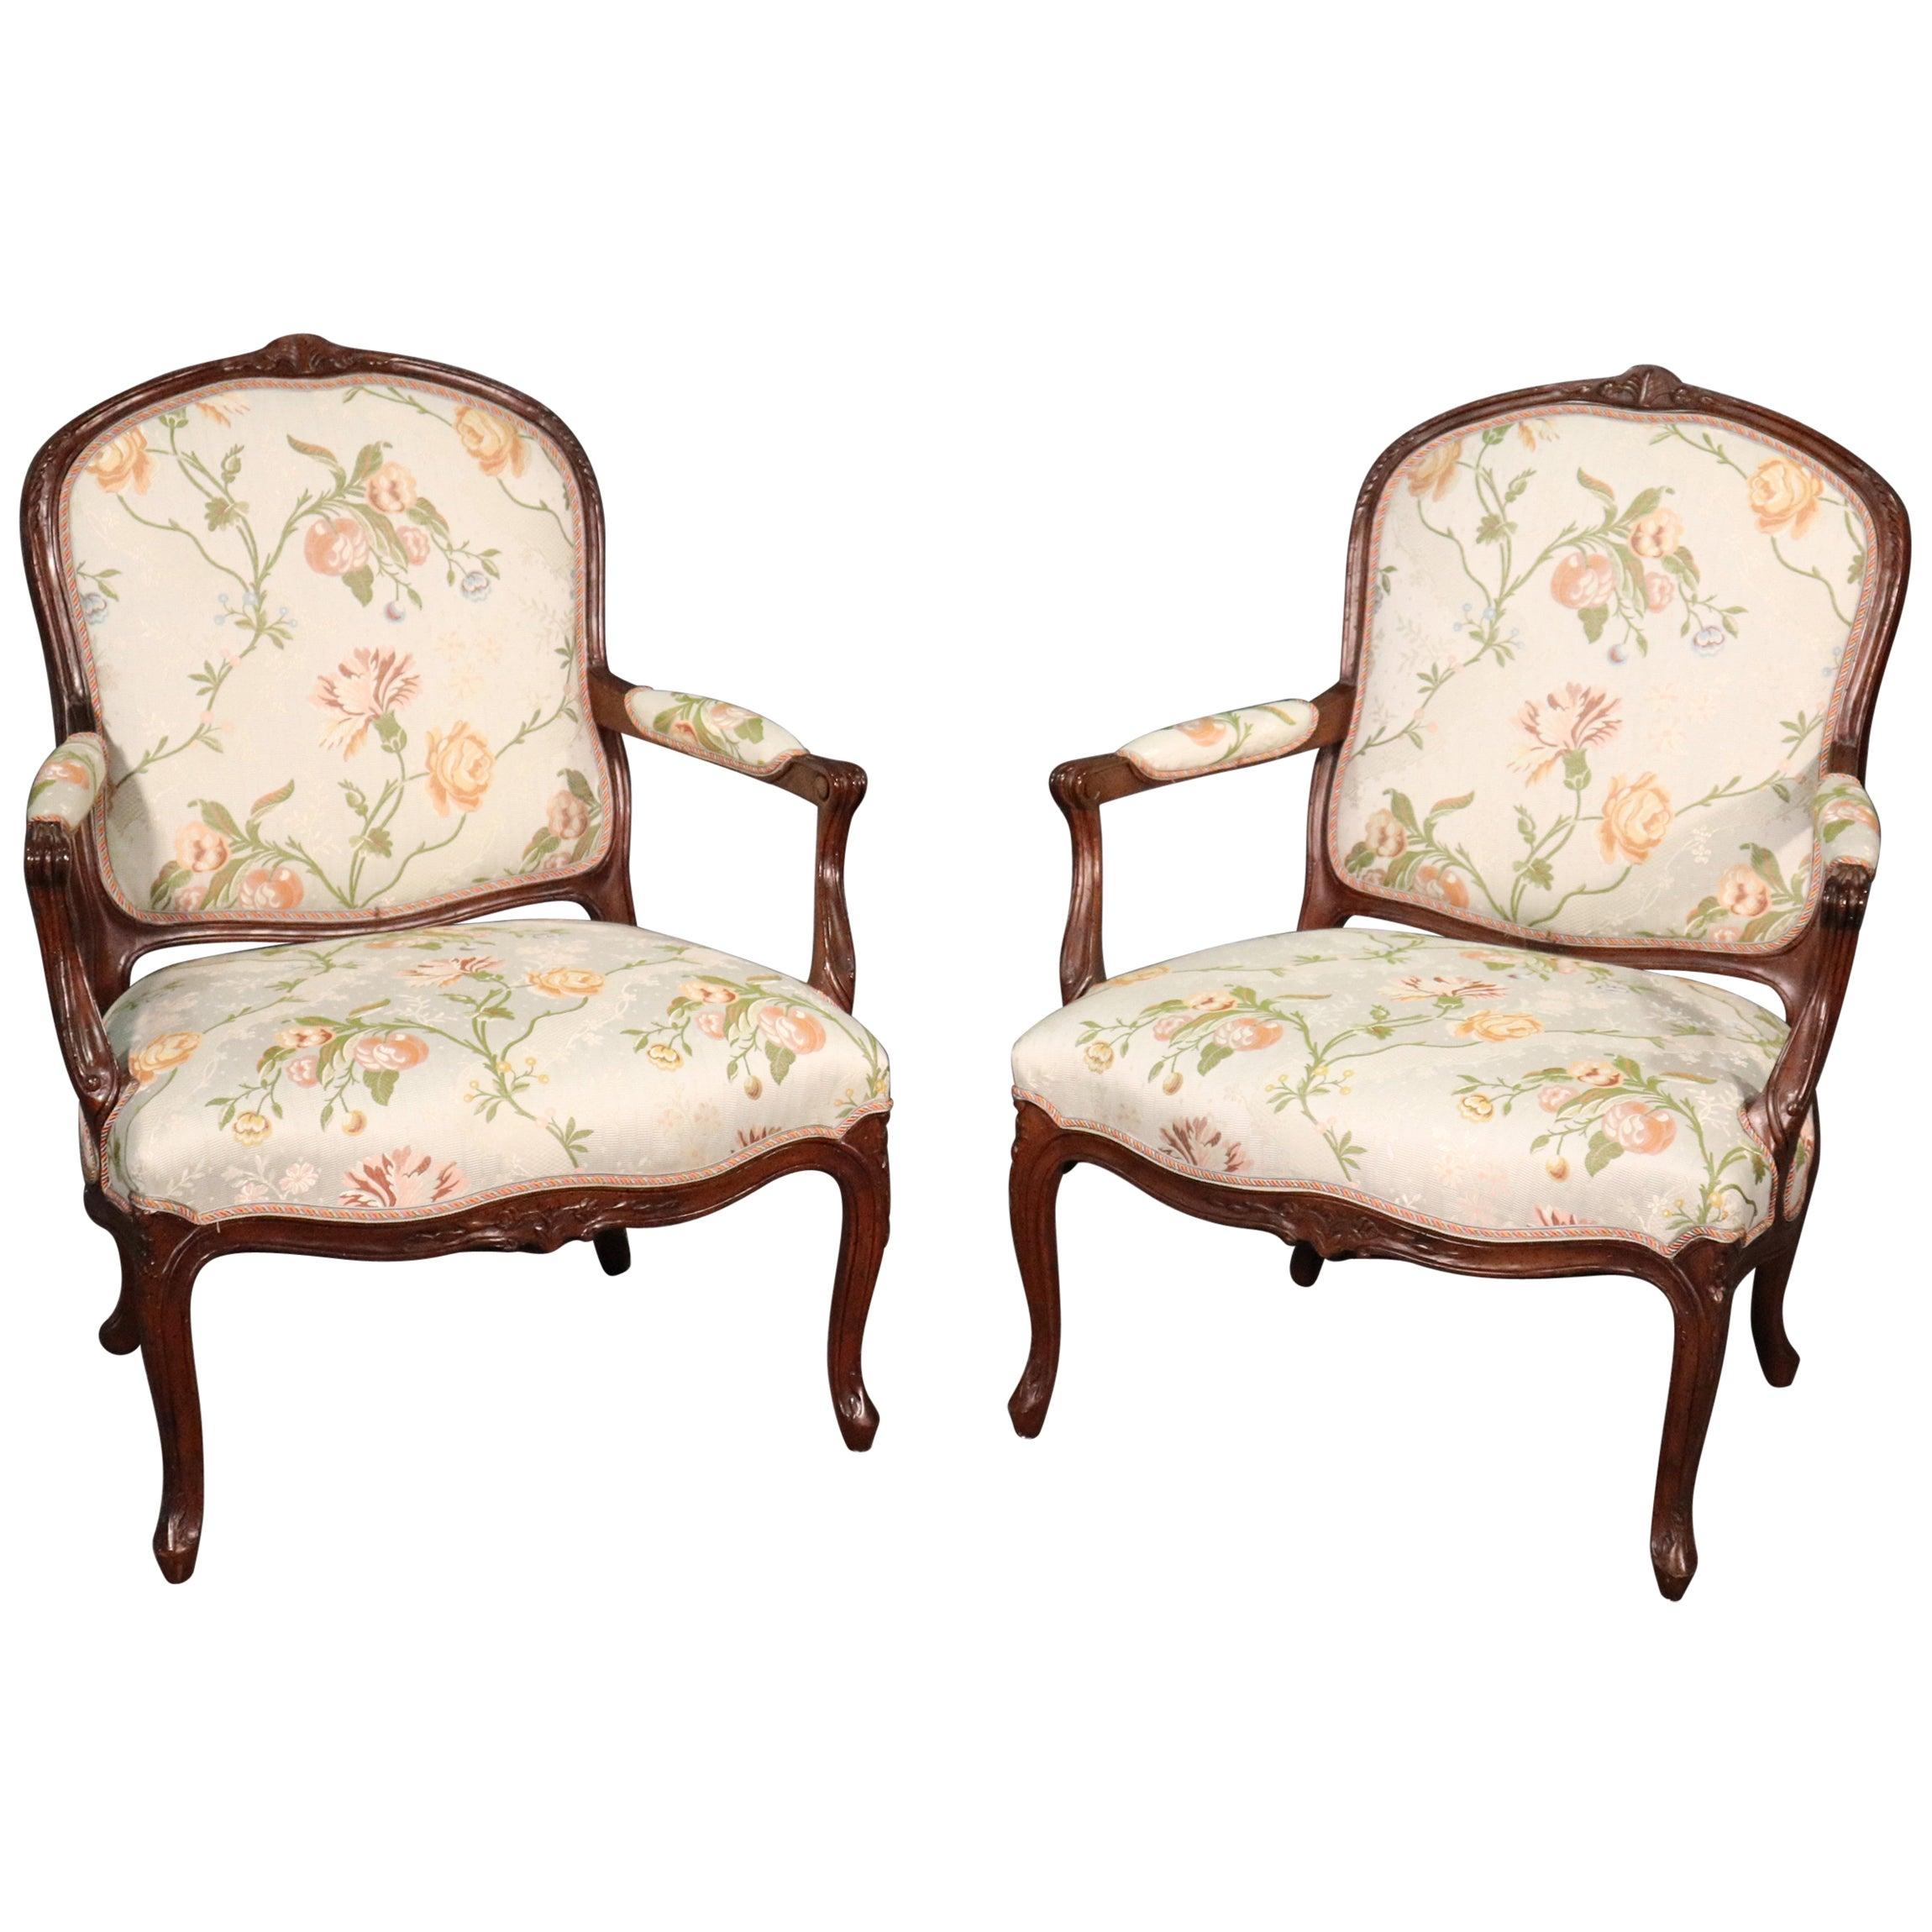 Fine Pair of French Louis XV Walnut Upholstered Open Bergère Open Armchairs